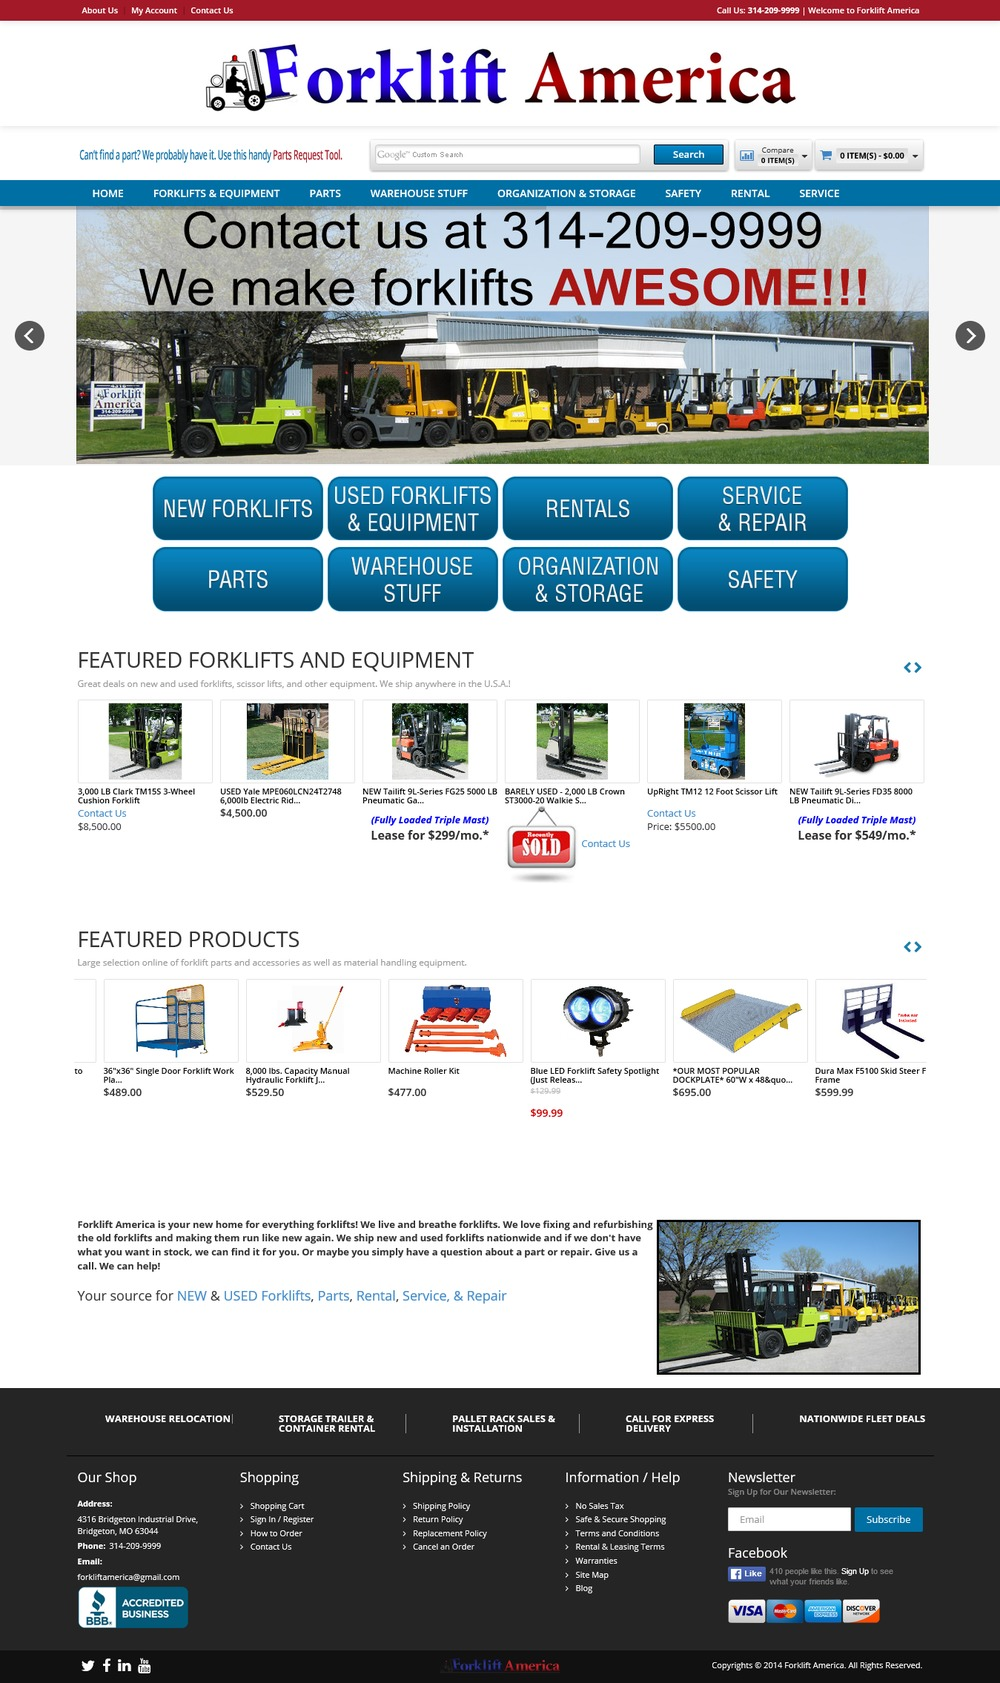 Shopping Cart of Fork Lift America - Successfully Delivered Projects On-Time and On-Budget. Improved Website Conversation Rate By 80% Against Existing Control.